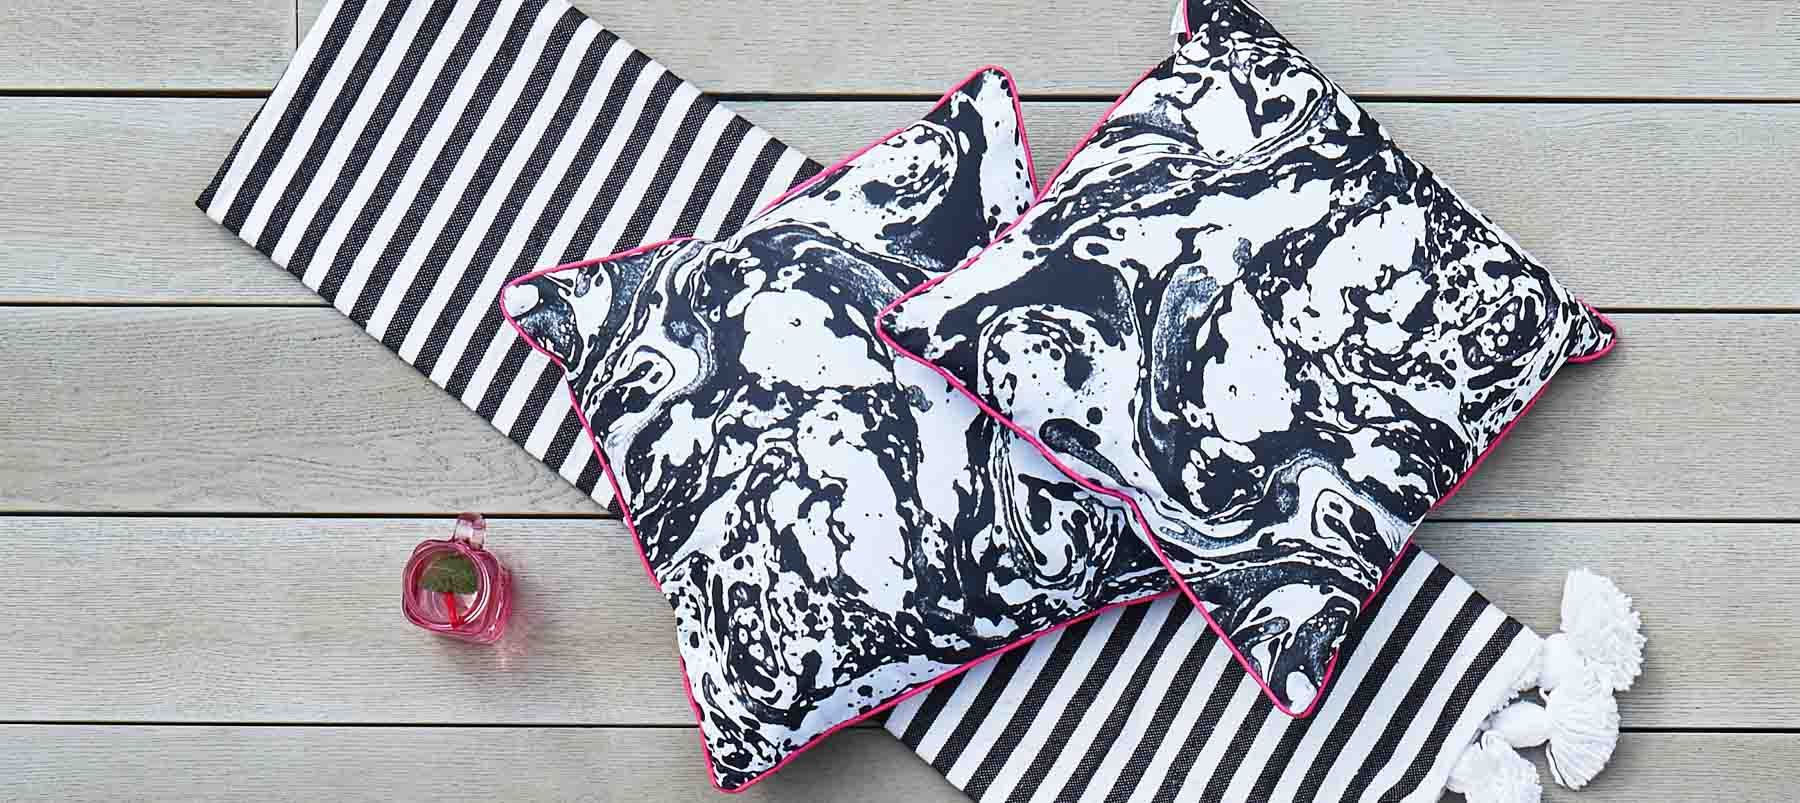 PLUNGE CUSHIONS & FABRIC